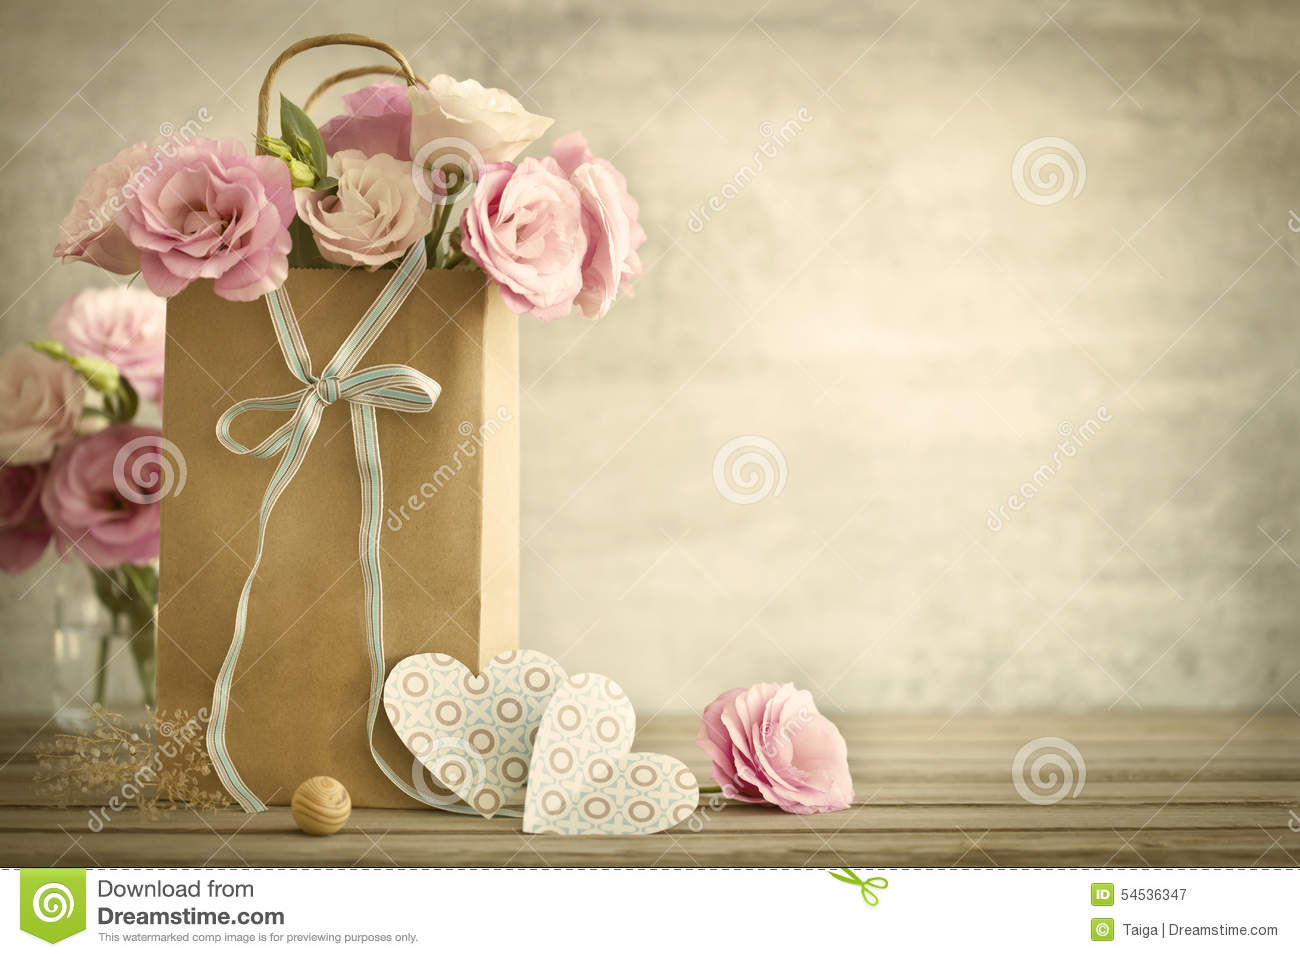 wedding background with roses flowers and hearts vintage styl stock image image of flora floral 54536347 dreamstime com